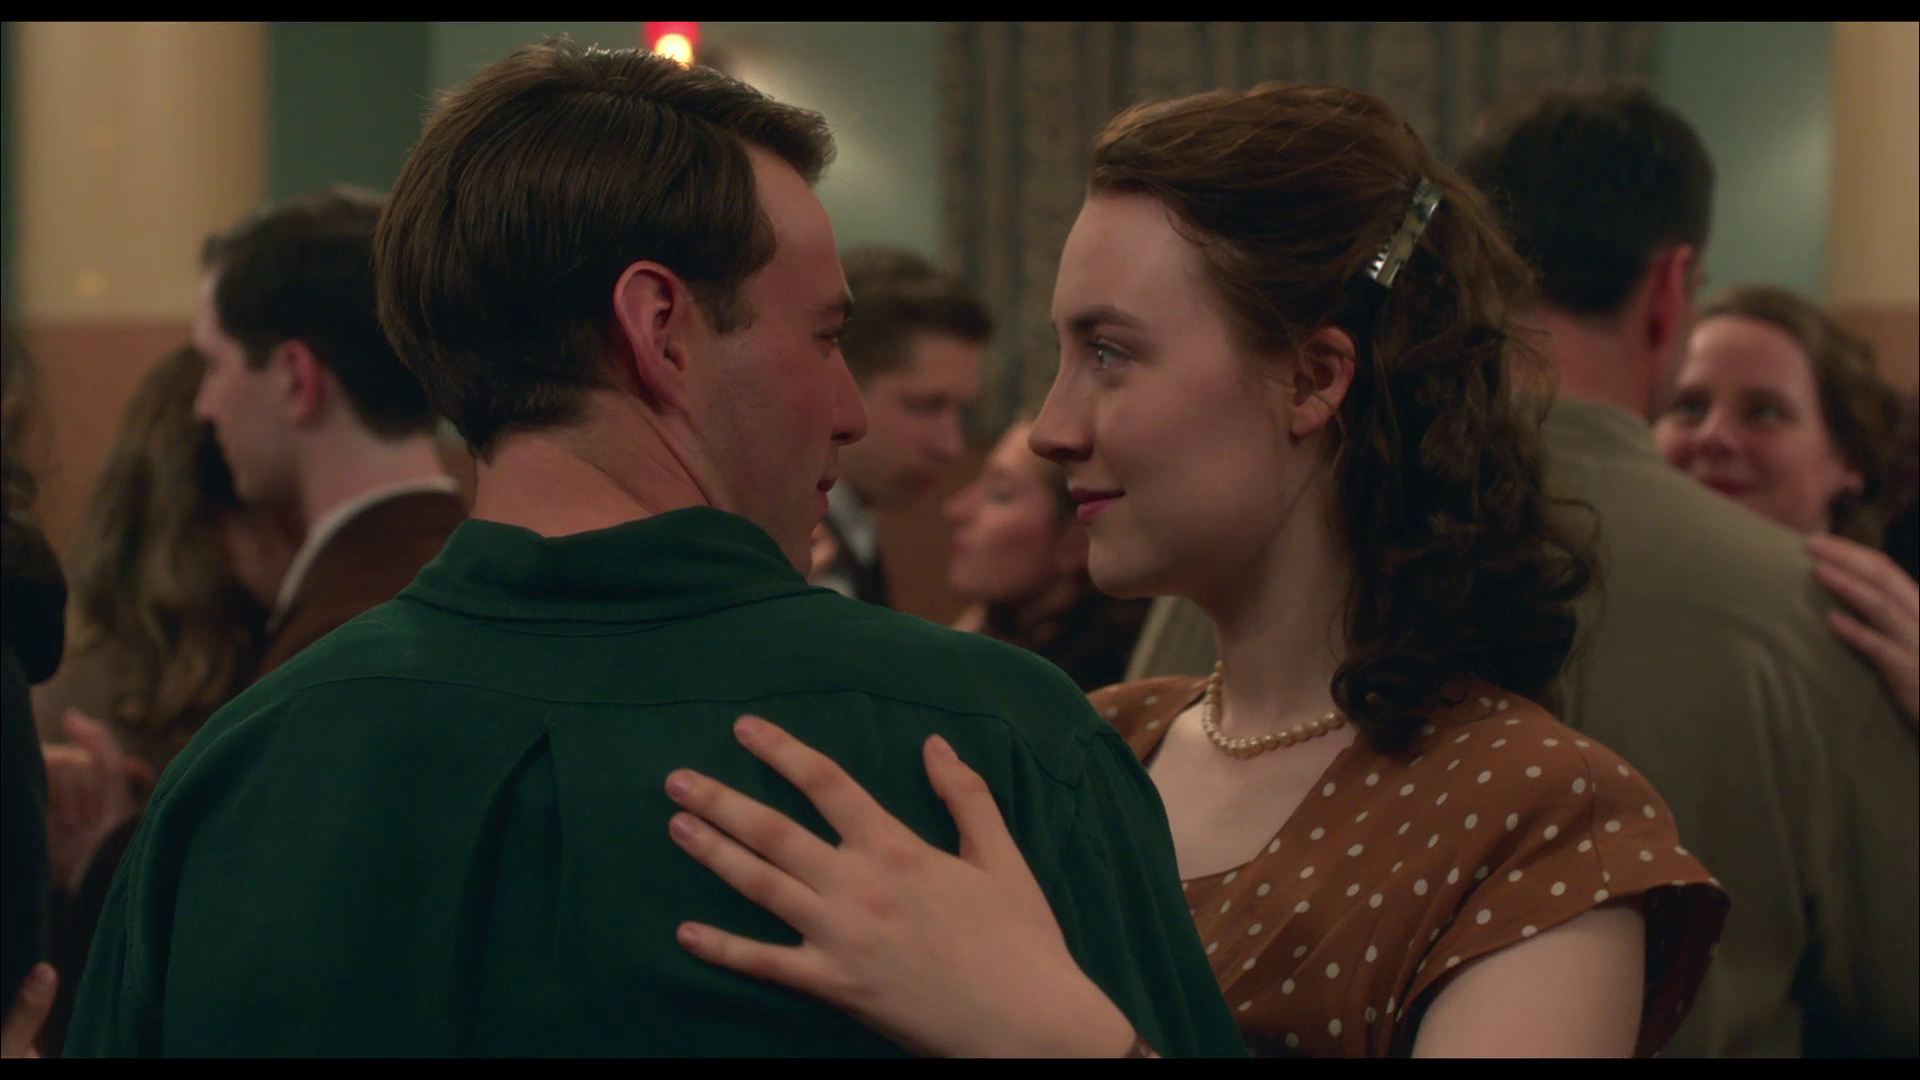 'Brooklyn' movie trailer